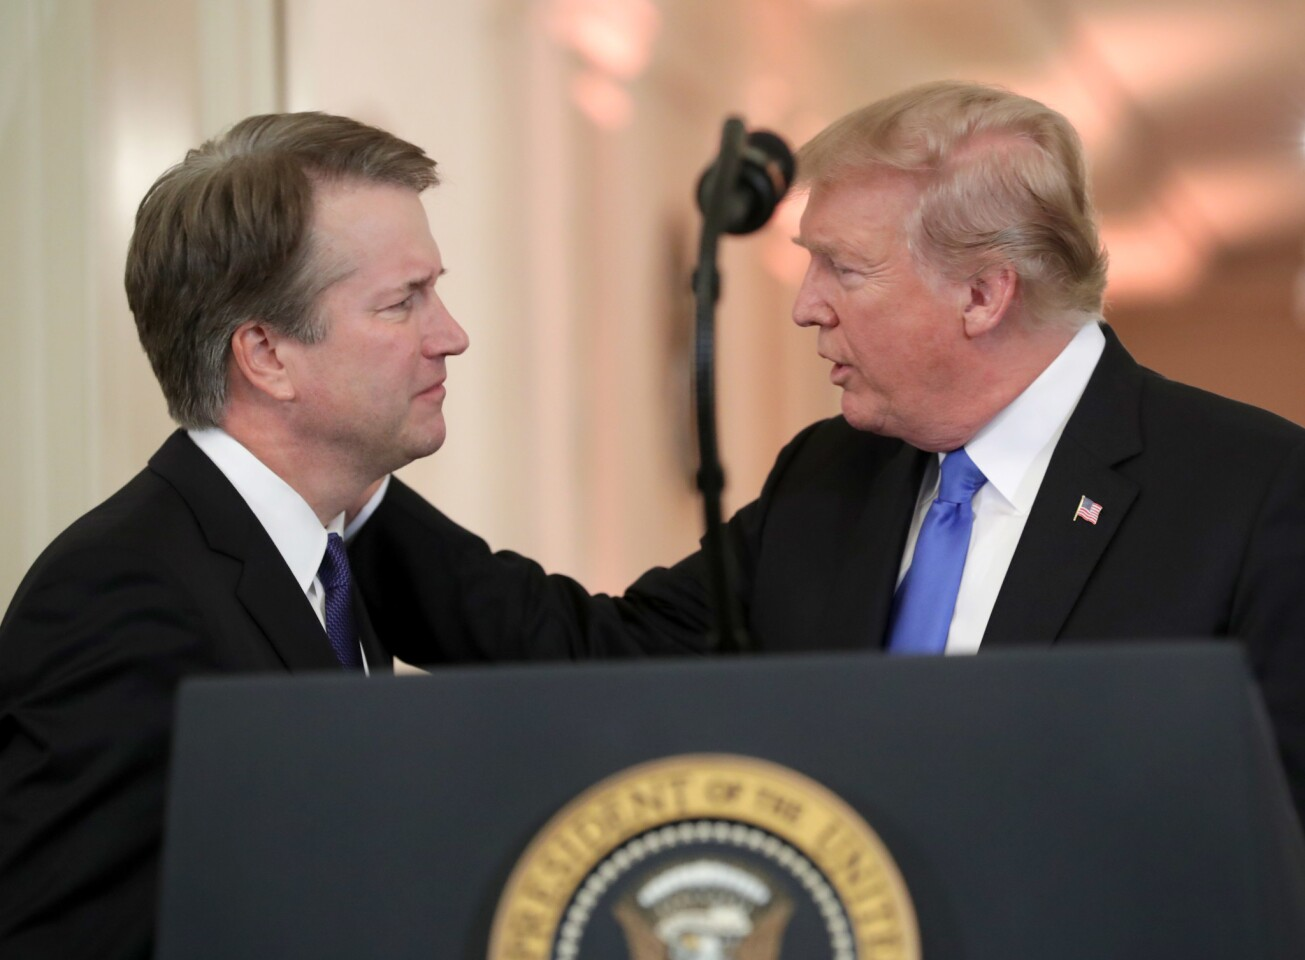 President Donald Trump introduces Judge Brett M. Kavanaugh as his nominee to the United States Supreme Court during an event in the East Room of the White House on July 9, 2018 in Washington, D.C. If confirmed, Kavanaugh would succeed Associate Justice Anthony Kennedy, 81, who is retiring after 30 years of service on the high court.